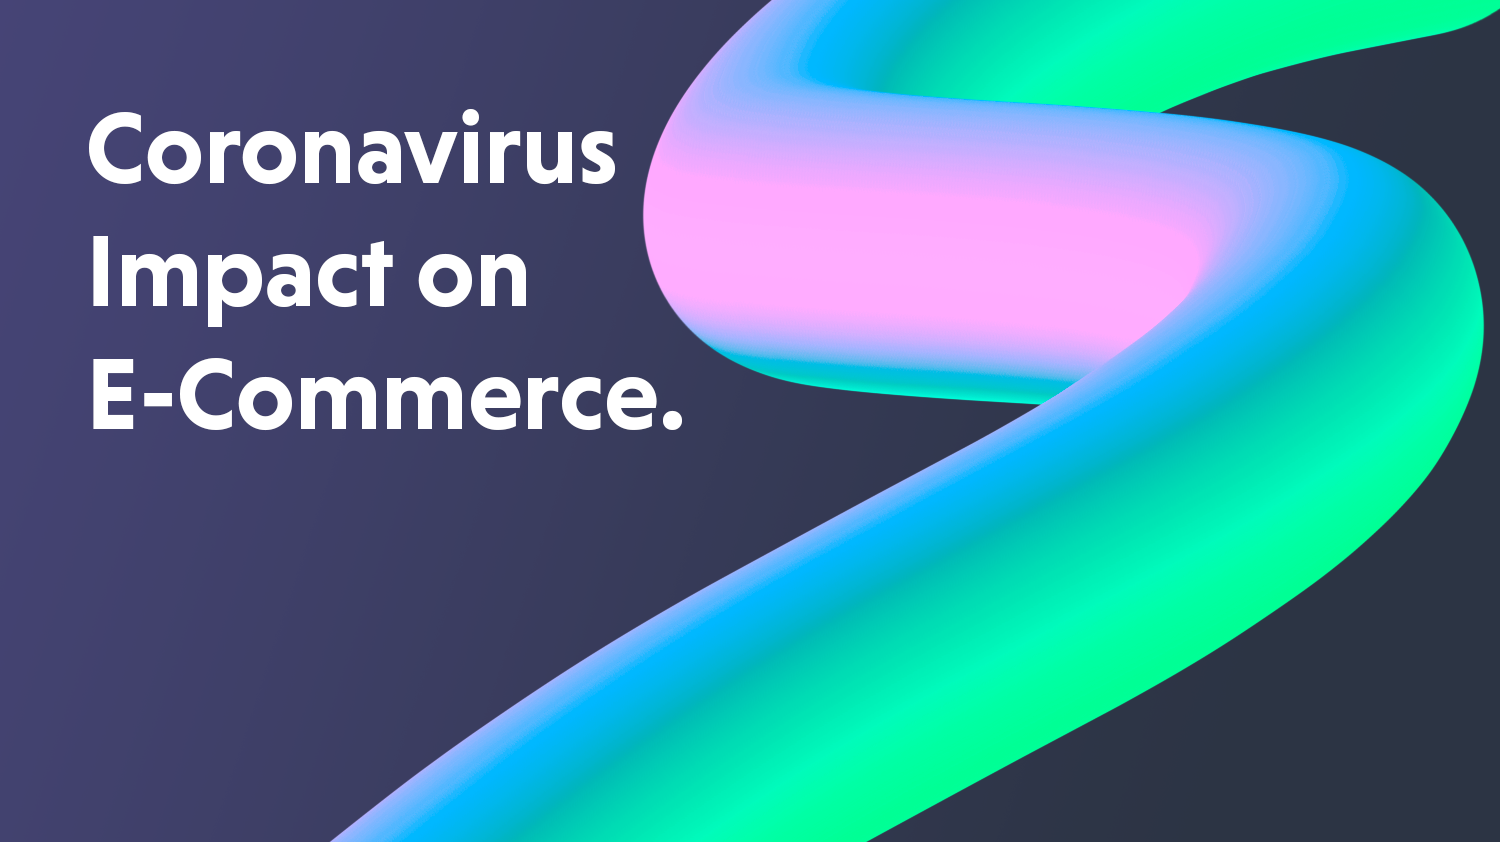 Coronavirus Impact on E-Commerce